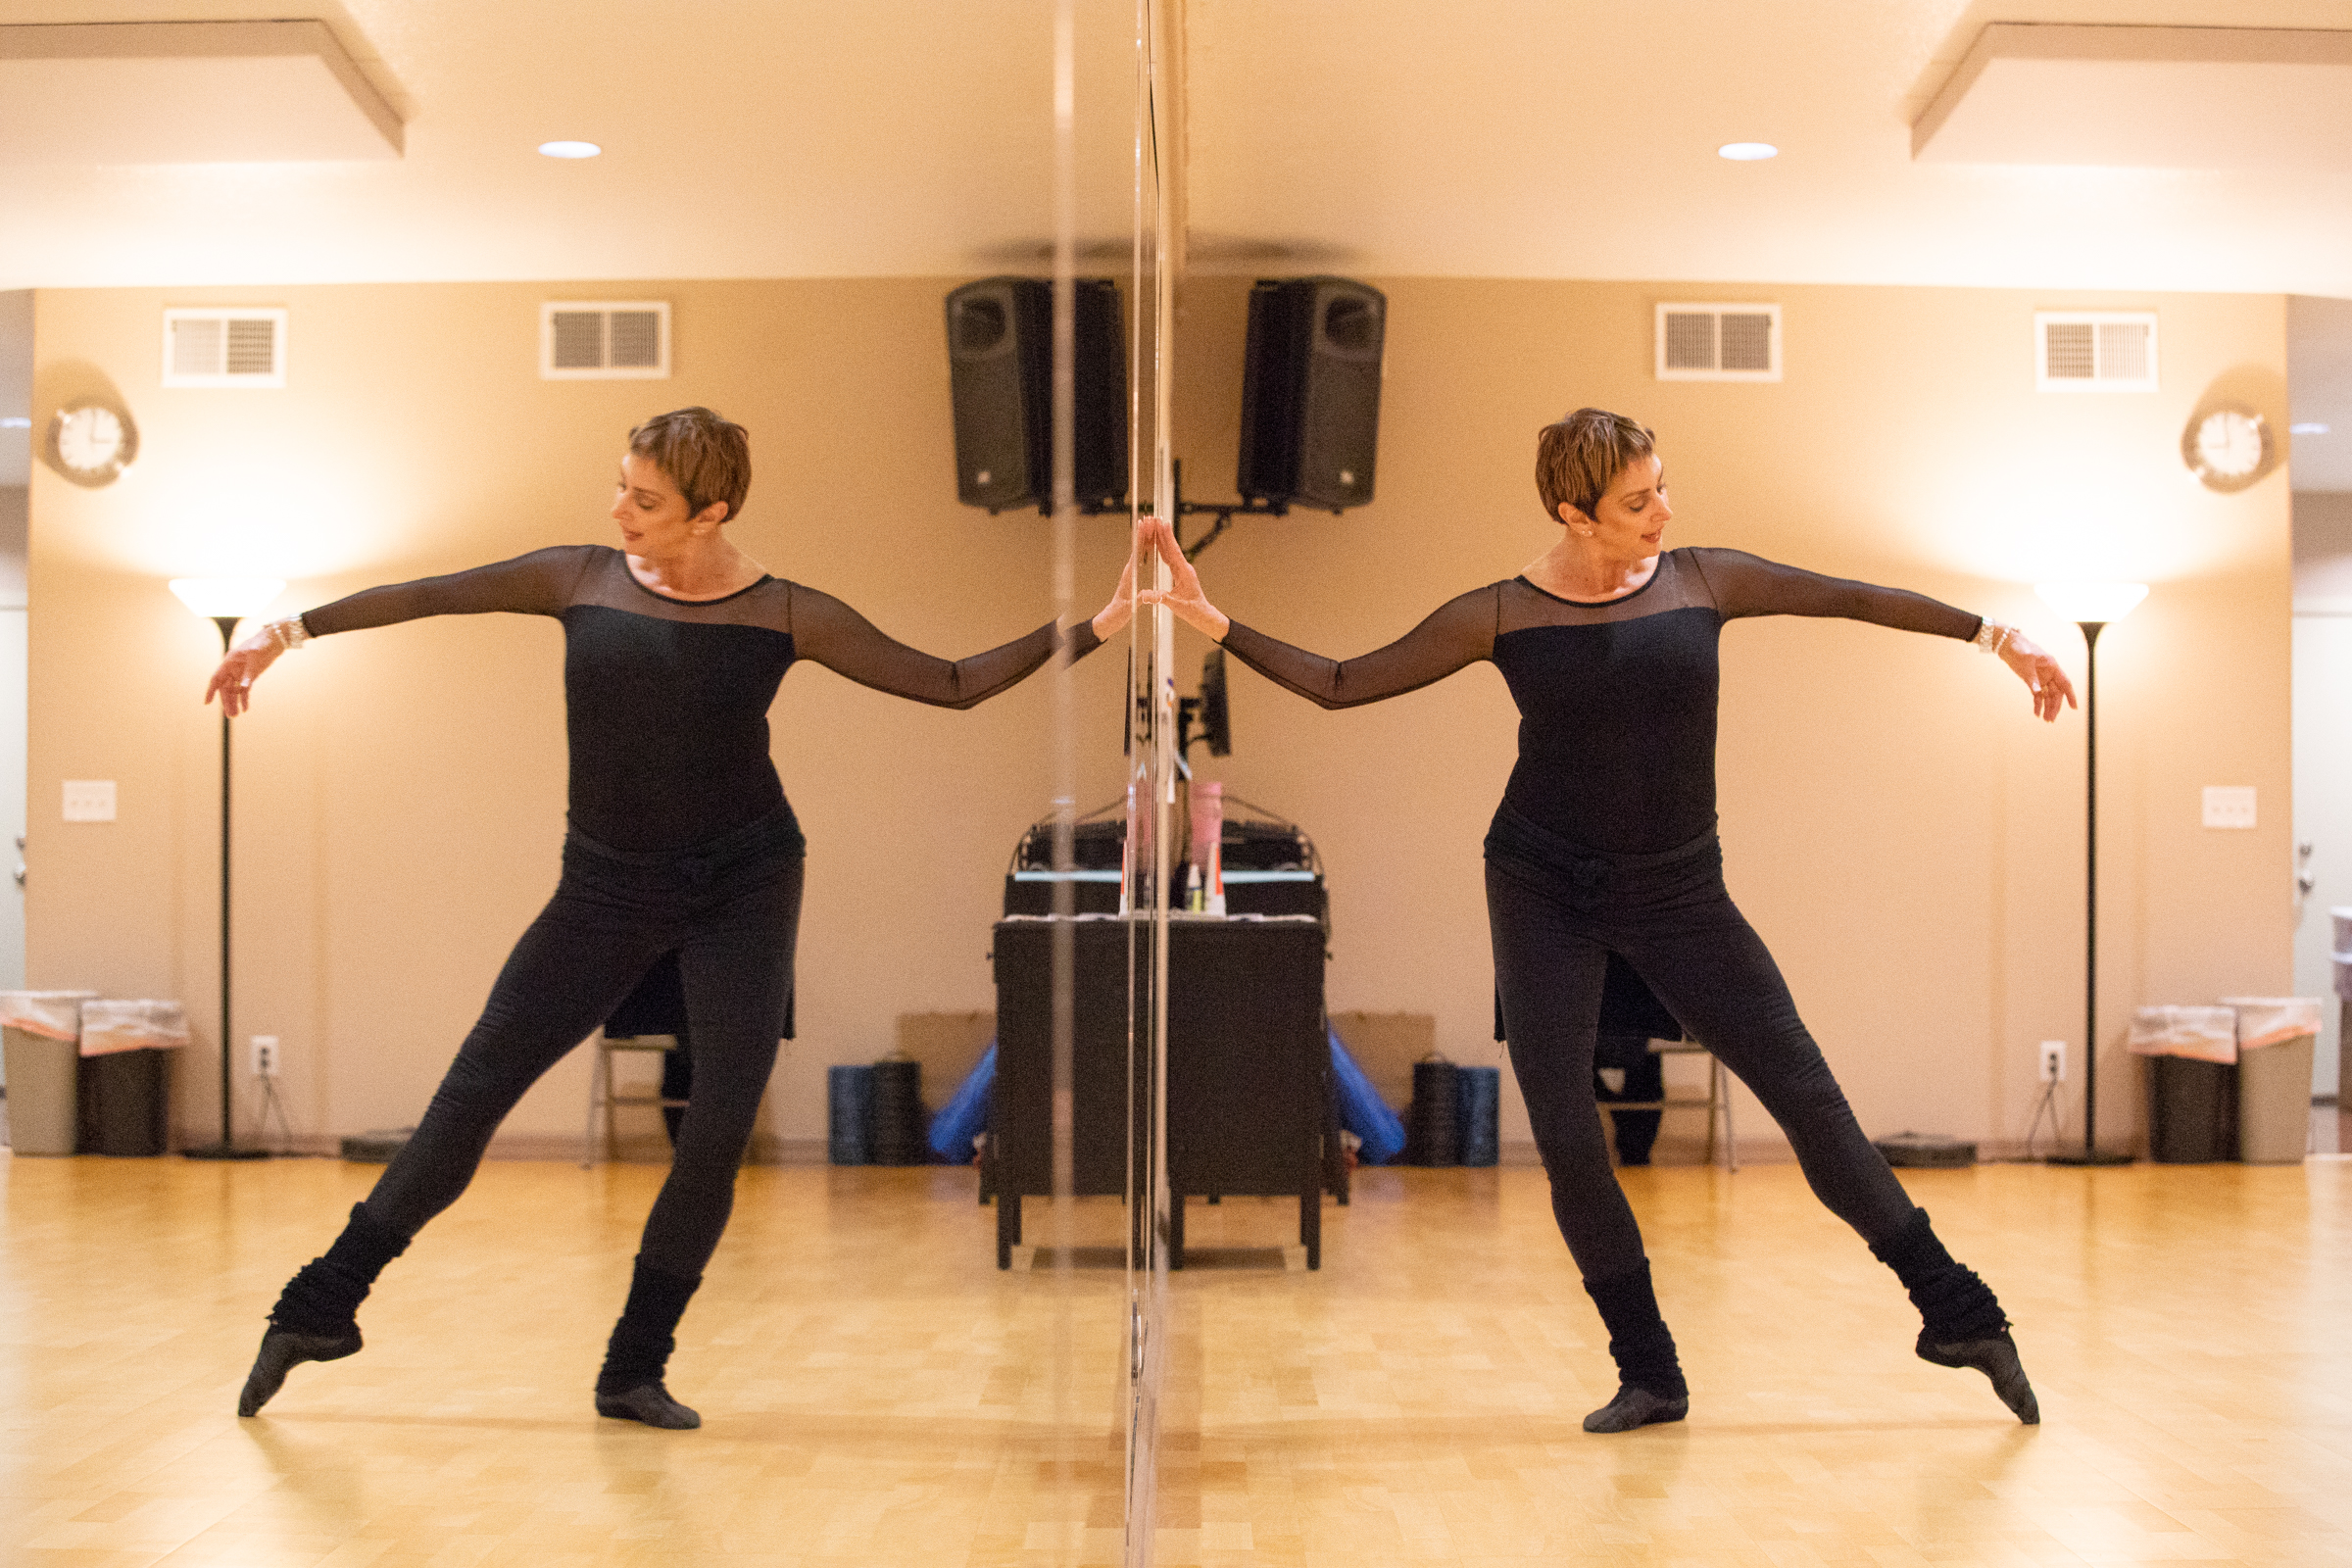 Stephanie Herman, who for years was a principal ballerina dancing for choreographer George Balanchine, demonstrates a ballet step at a performance space in Los Altos, California, on Nov. 29, 2018.